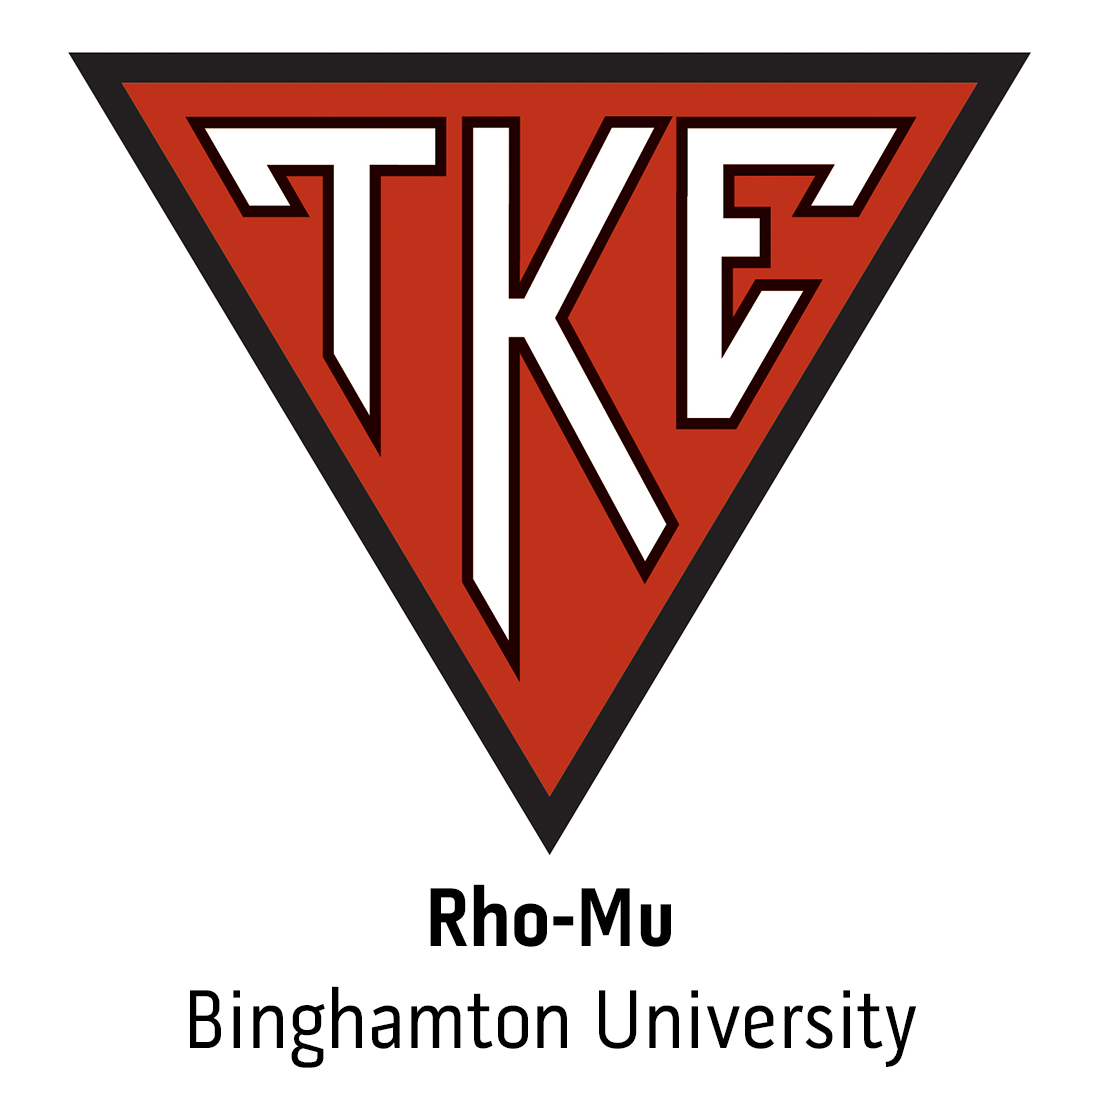 Rho-Mu Chapter at Binghamton University-SUNY